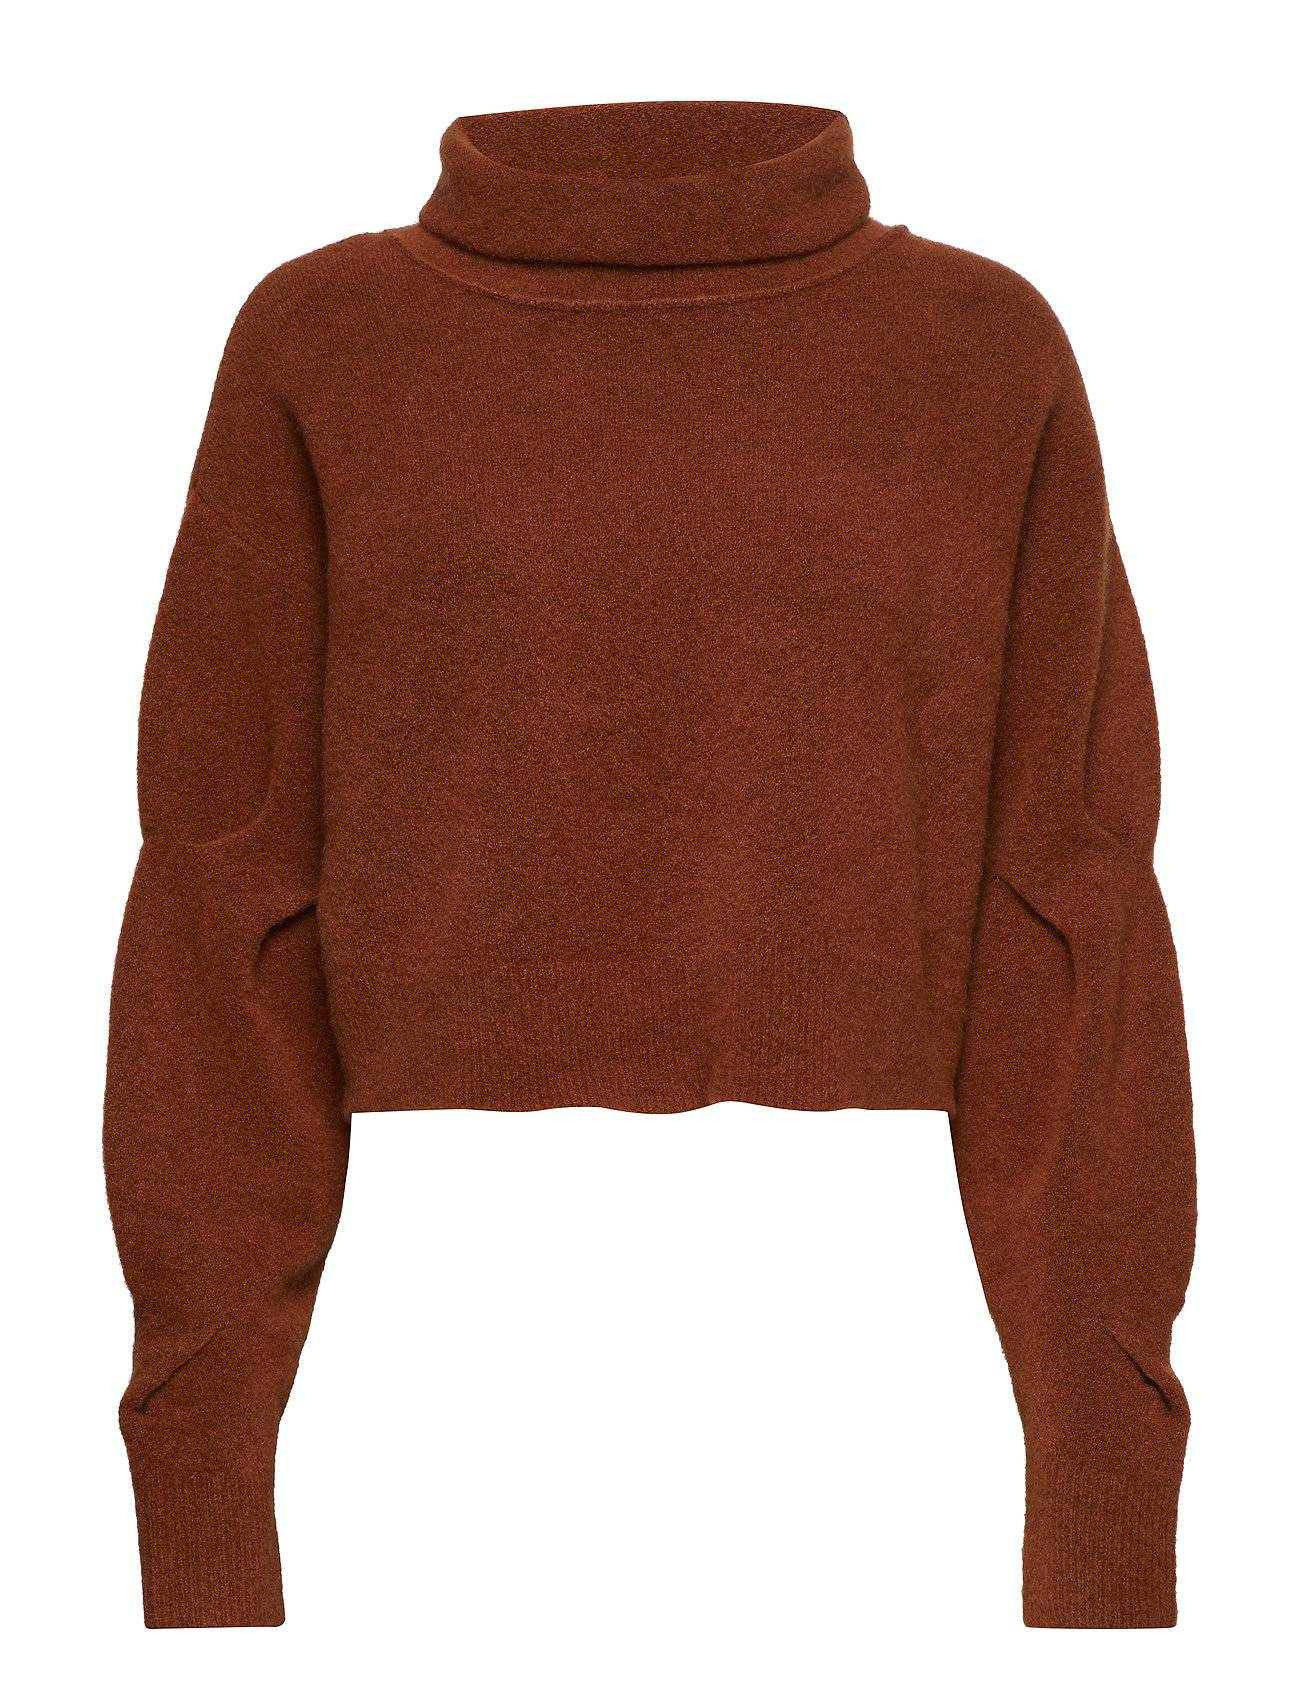 T by Alexander Wang Chunky Wool Cropped L/S Sweater